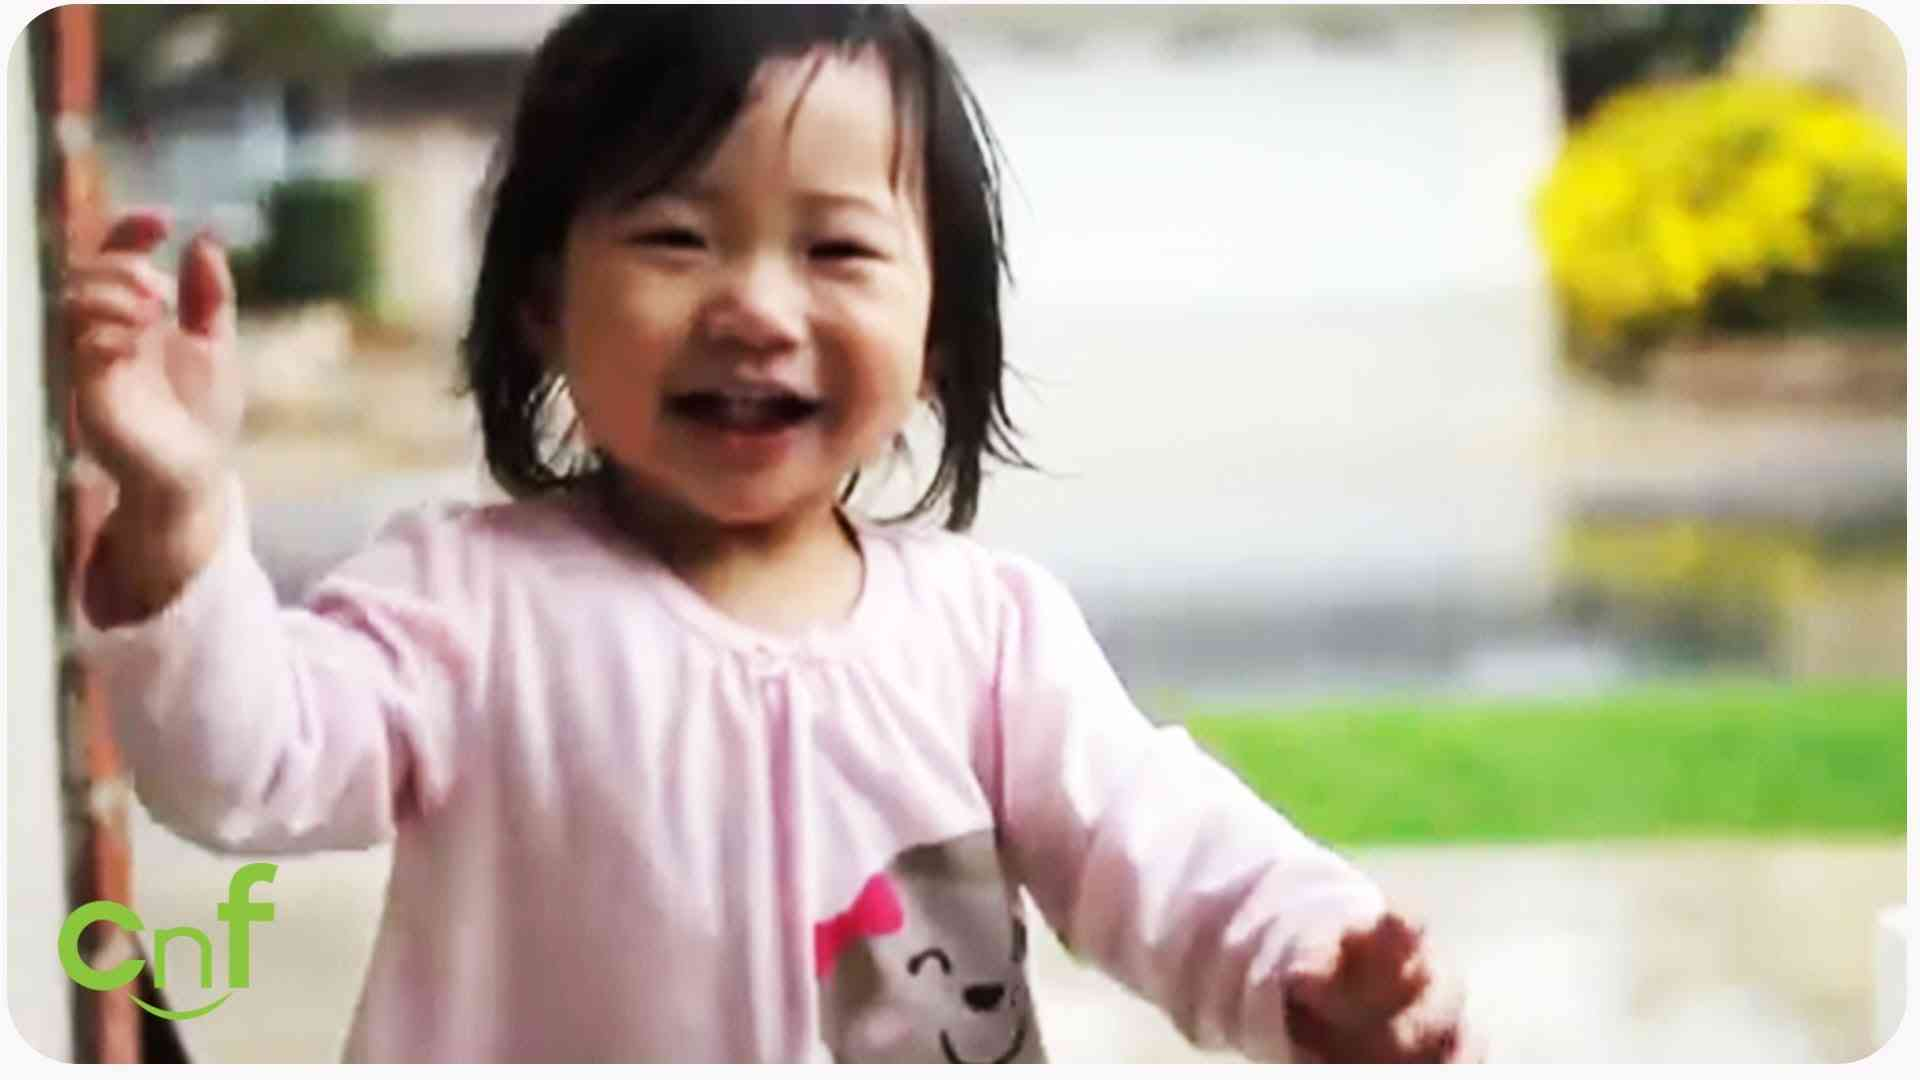 Kayden + Rain | Little Girl Experiences Her First Rainfall - YouTube